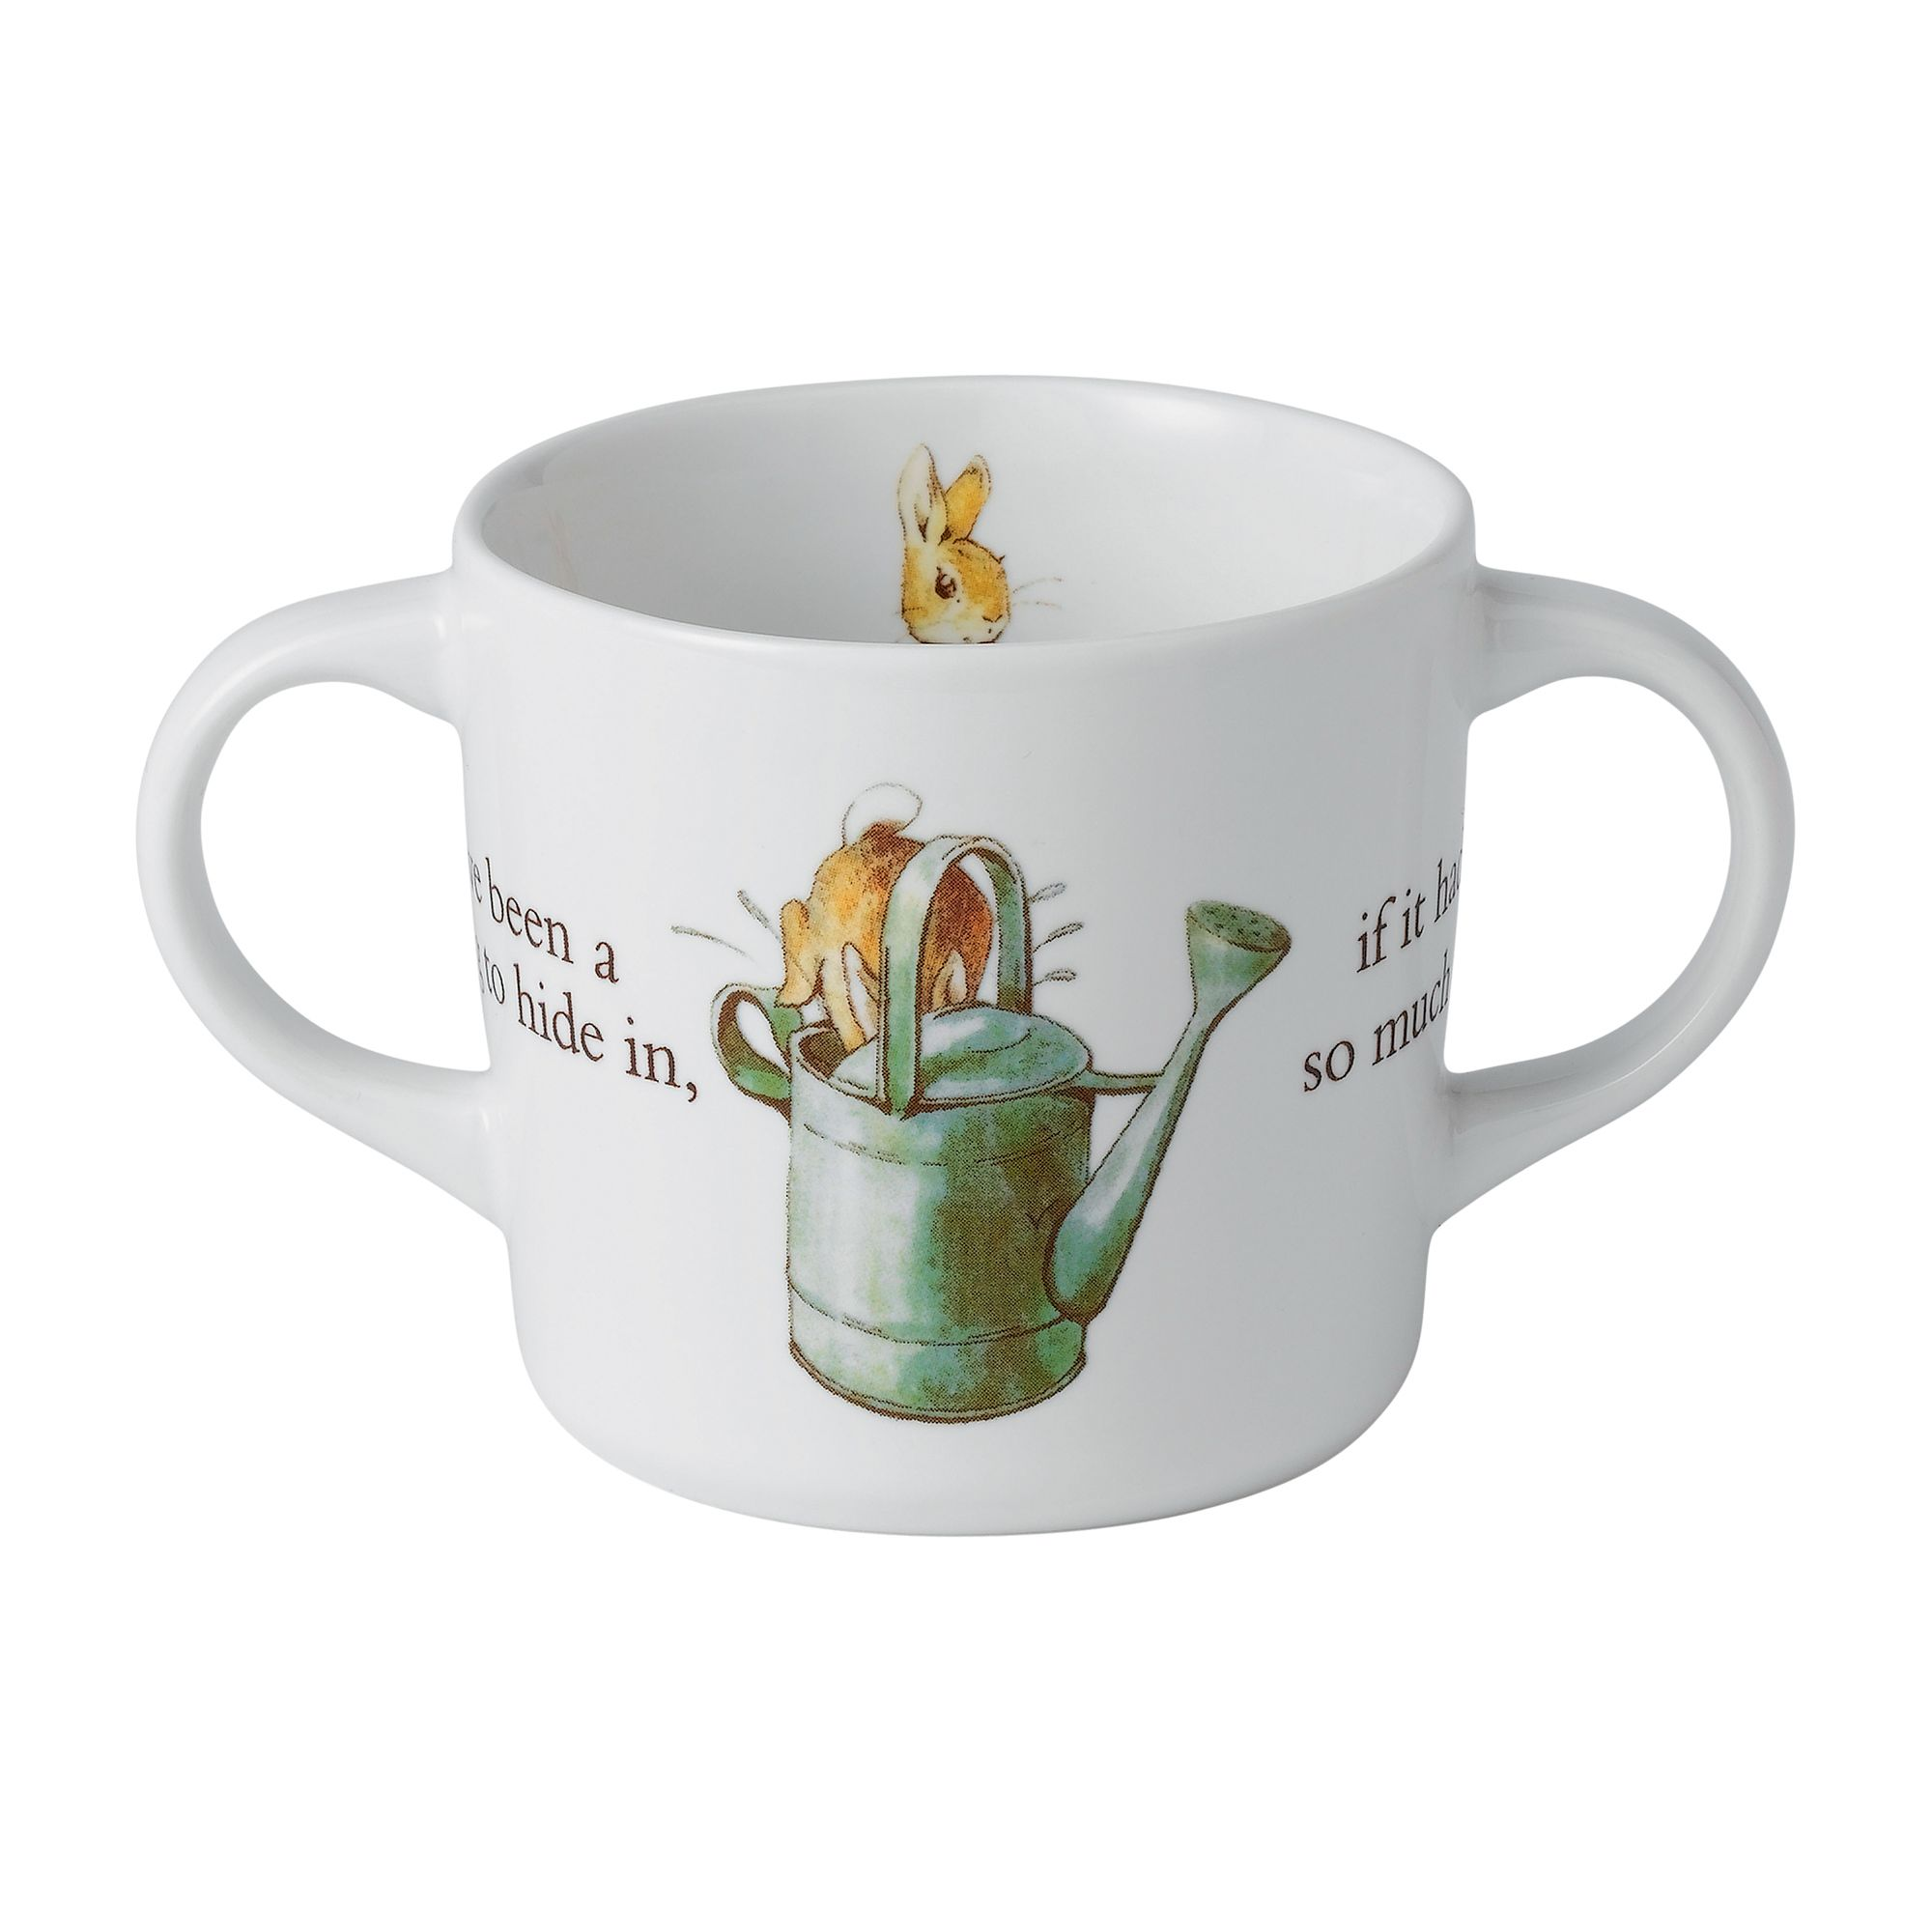 Peter Rabbit Original Two Handled Mug